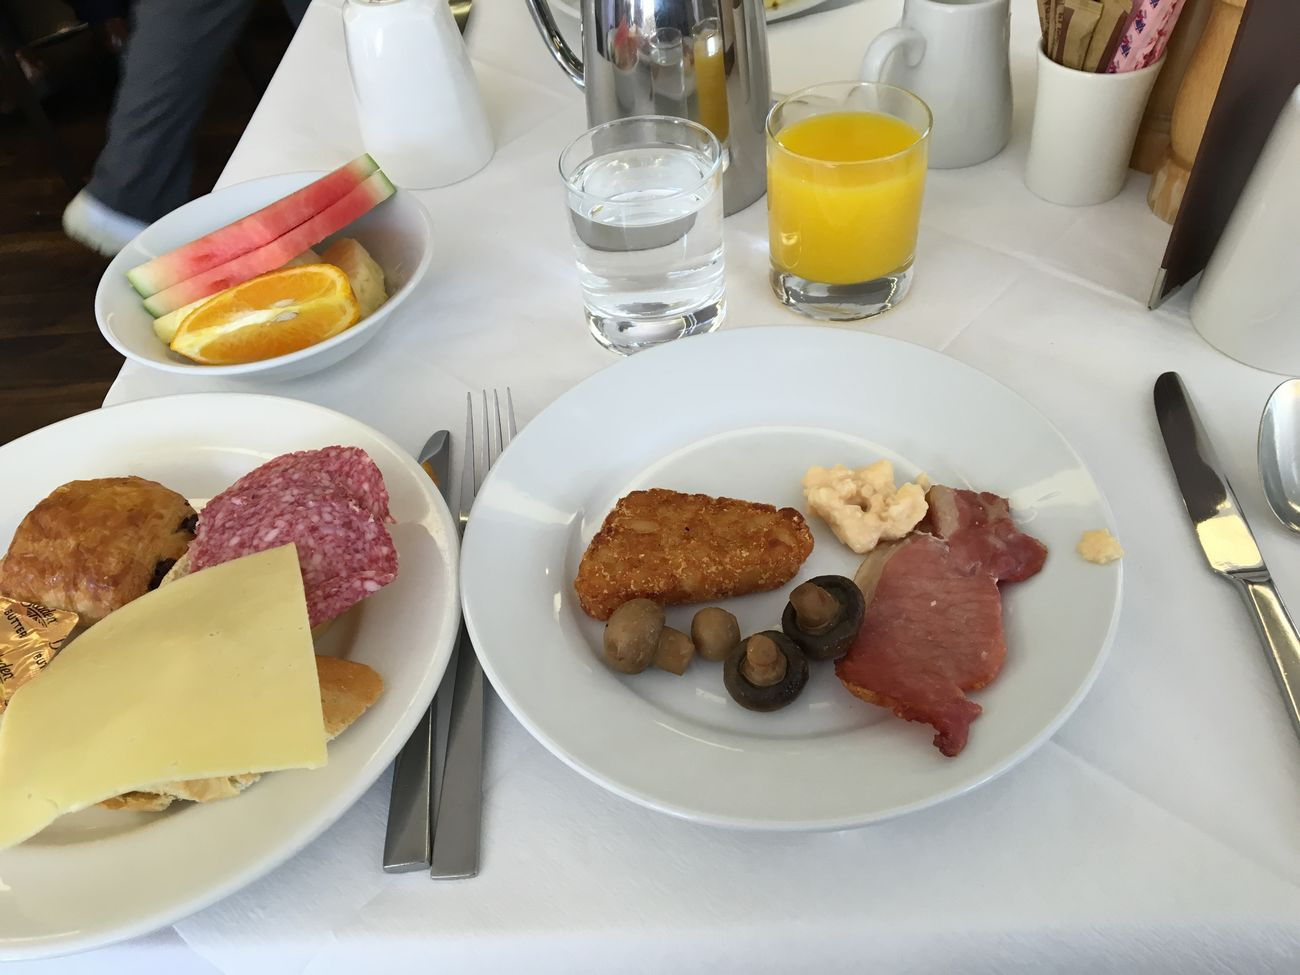 Breakfast English Breakfast Food Food And Drink Freshness Fruits Plate Ready-to-eat Sausage Table Toasted Bread